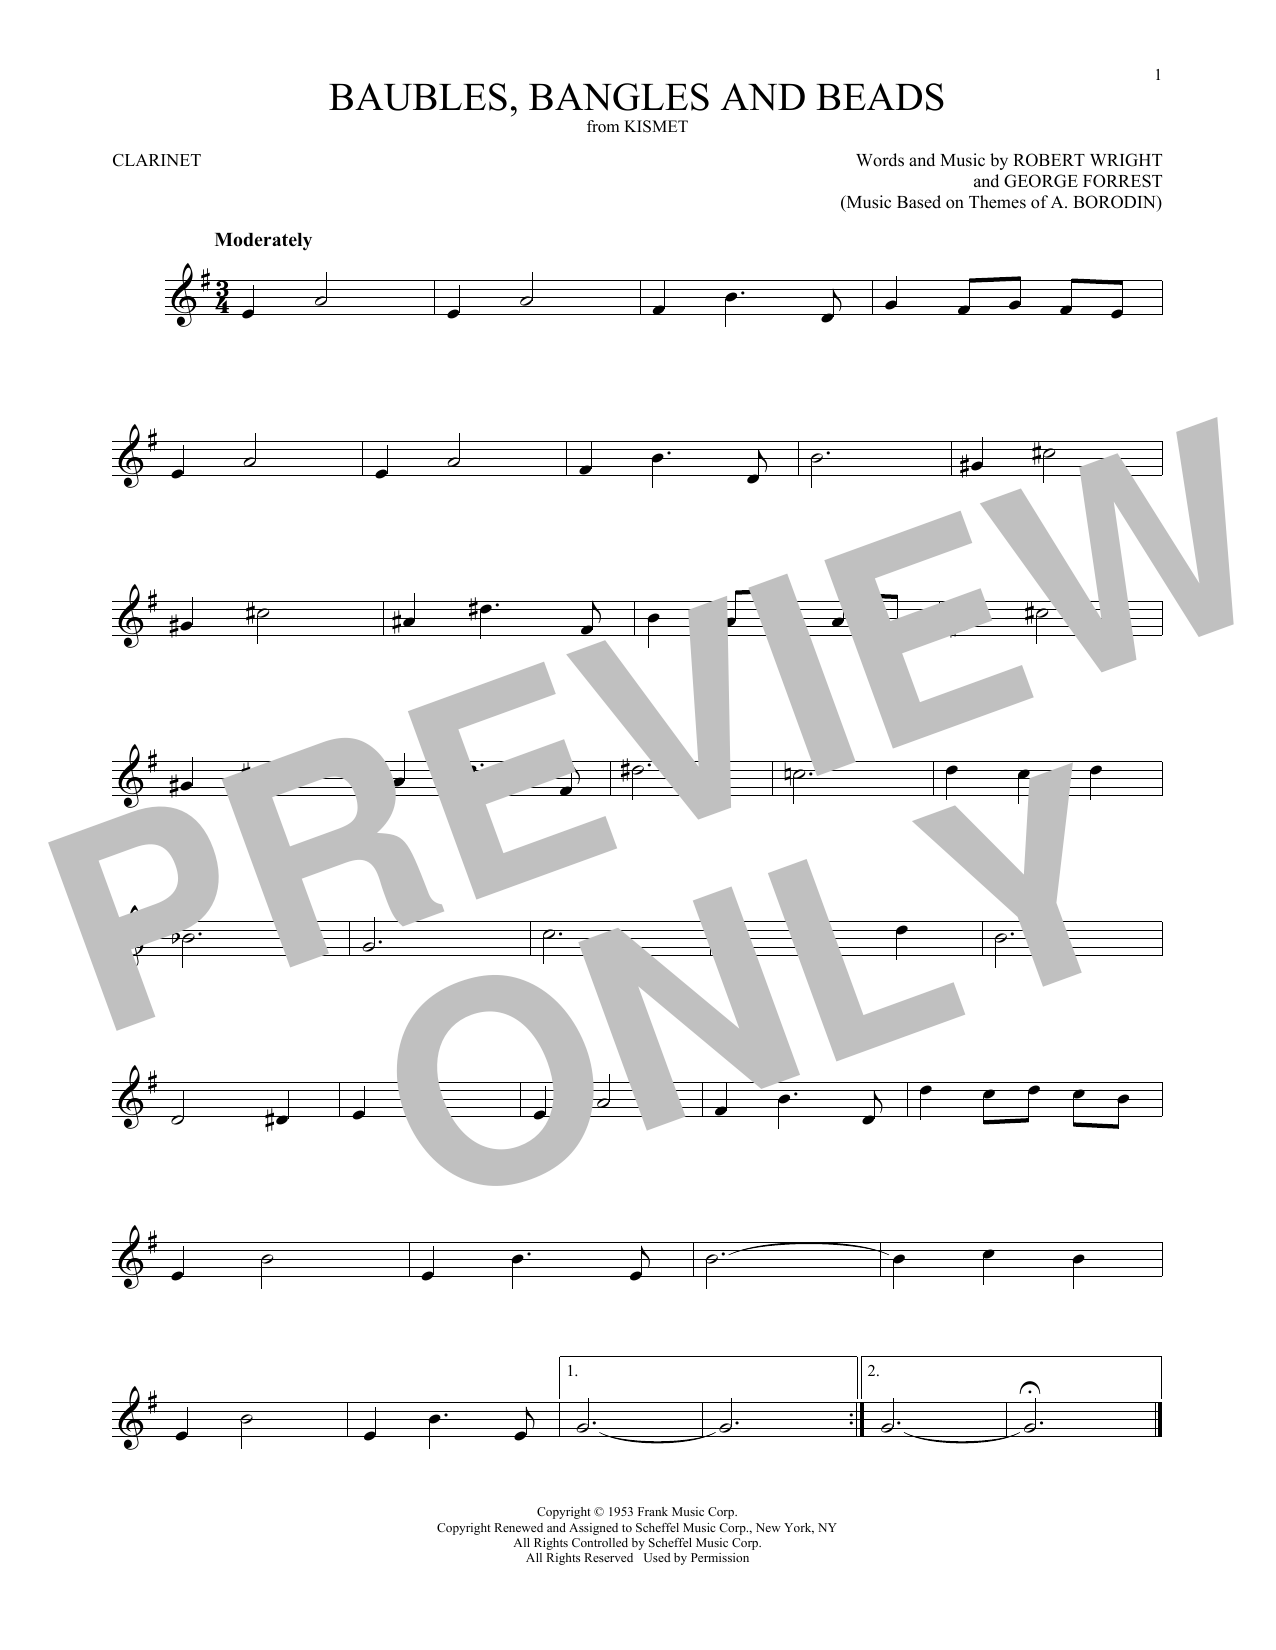 Baubles, Bangles And Beads (Clarinet Solo) - Print Sheet Music Now